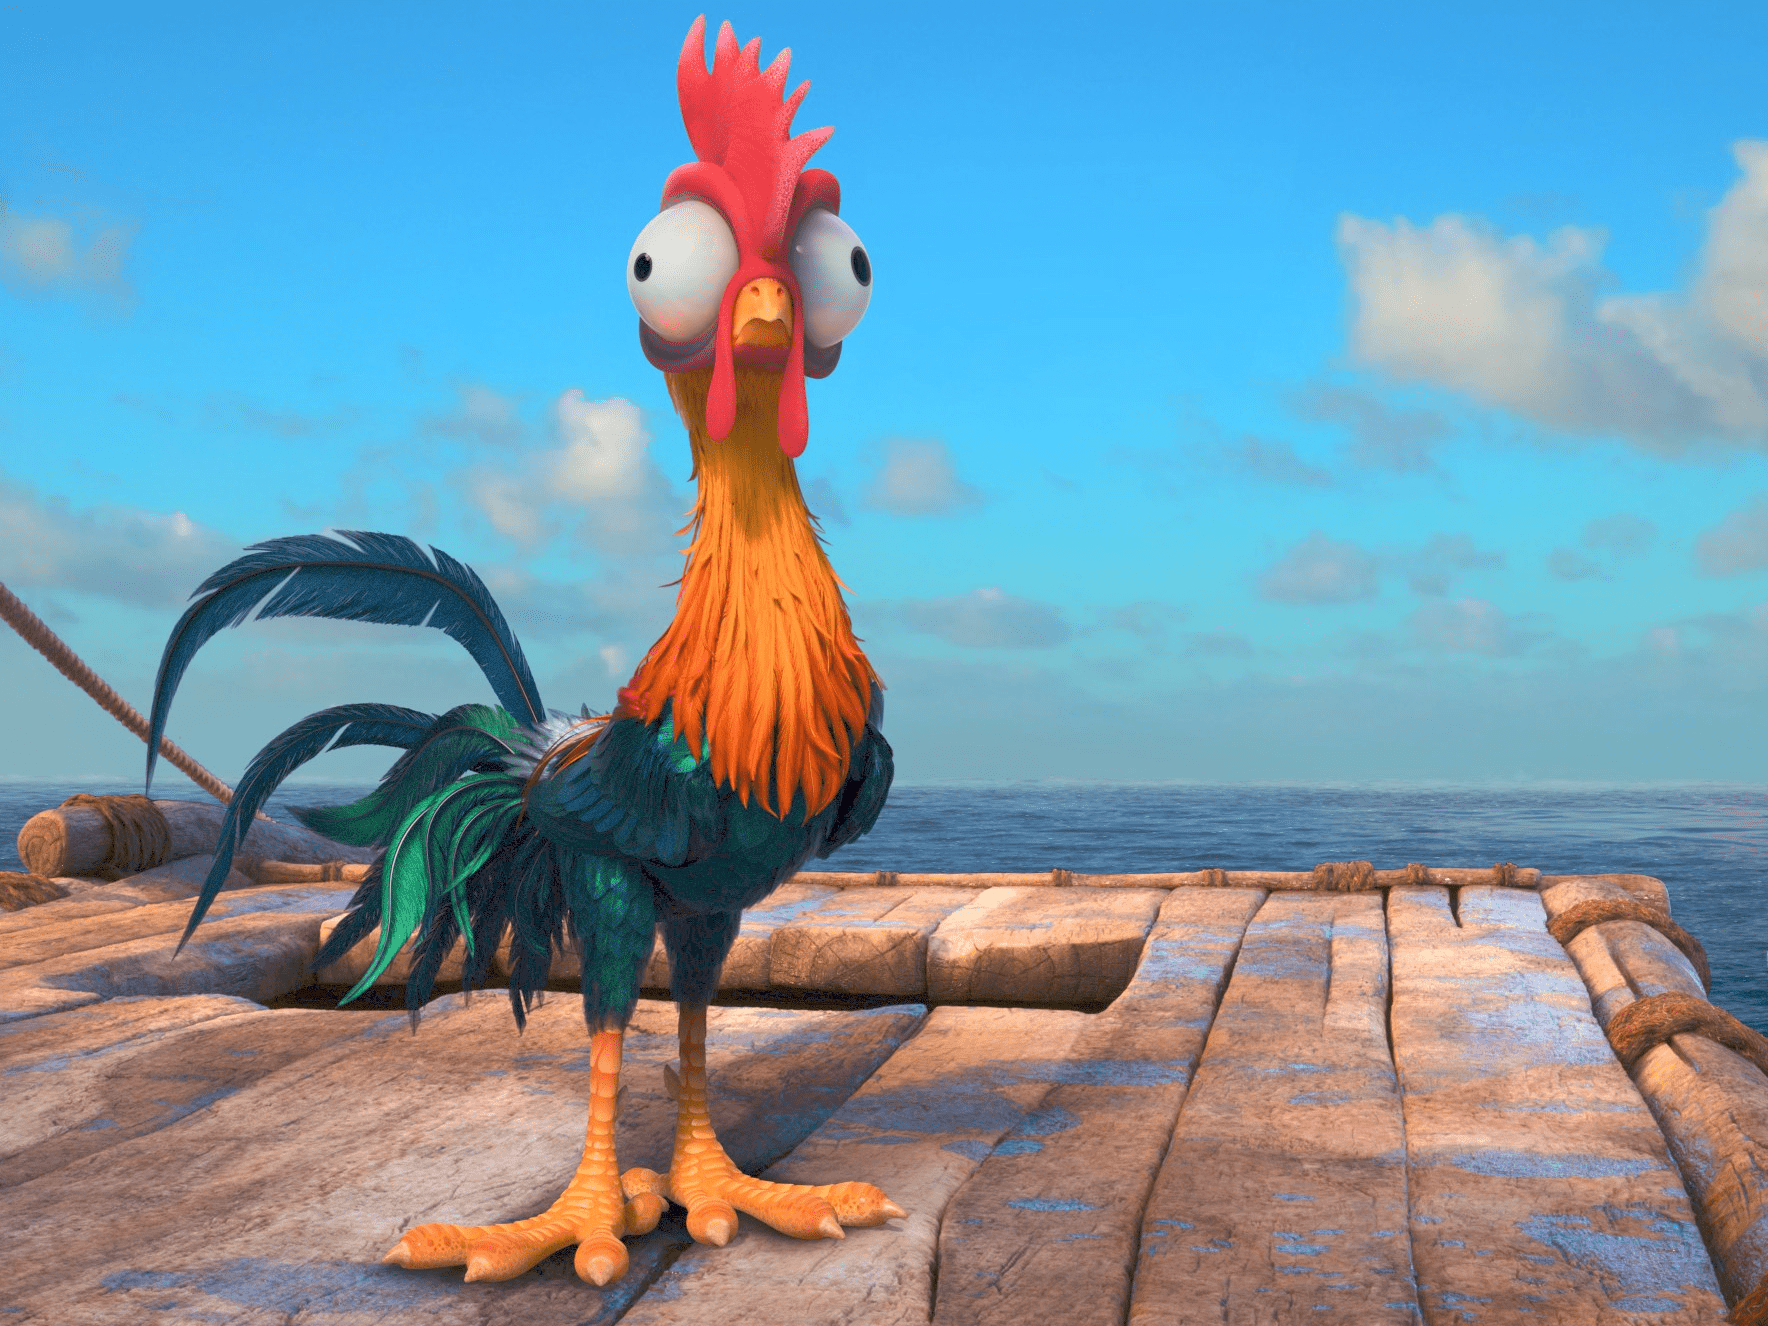 Heihei personagem do filme Vaiana